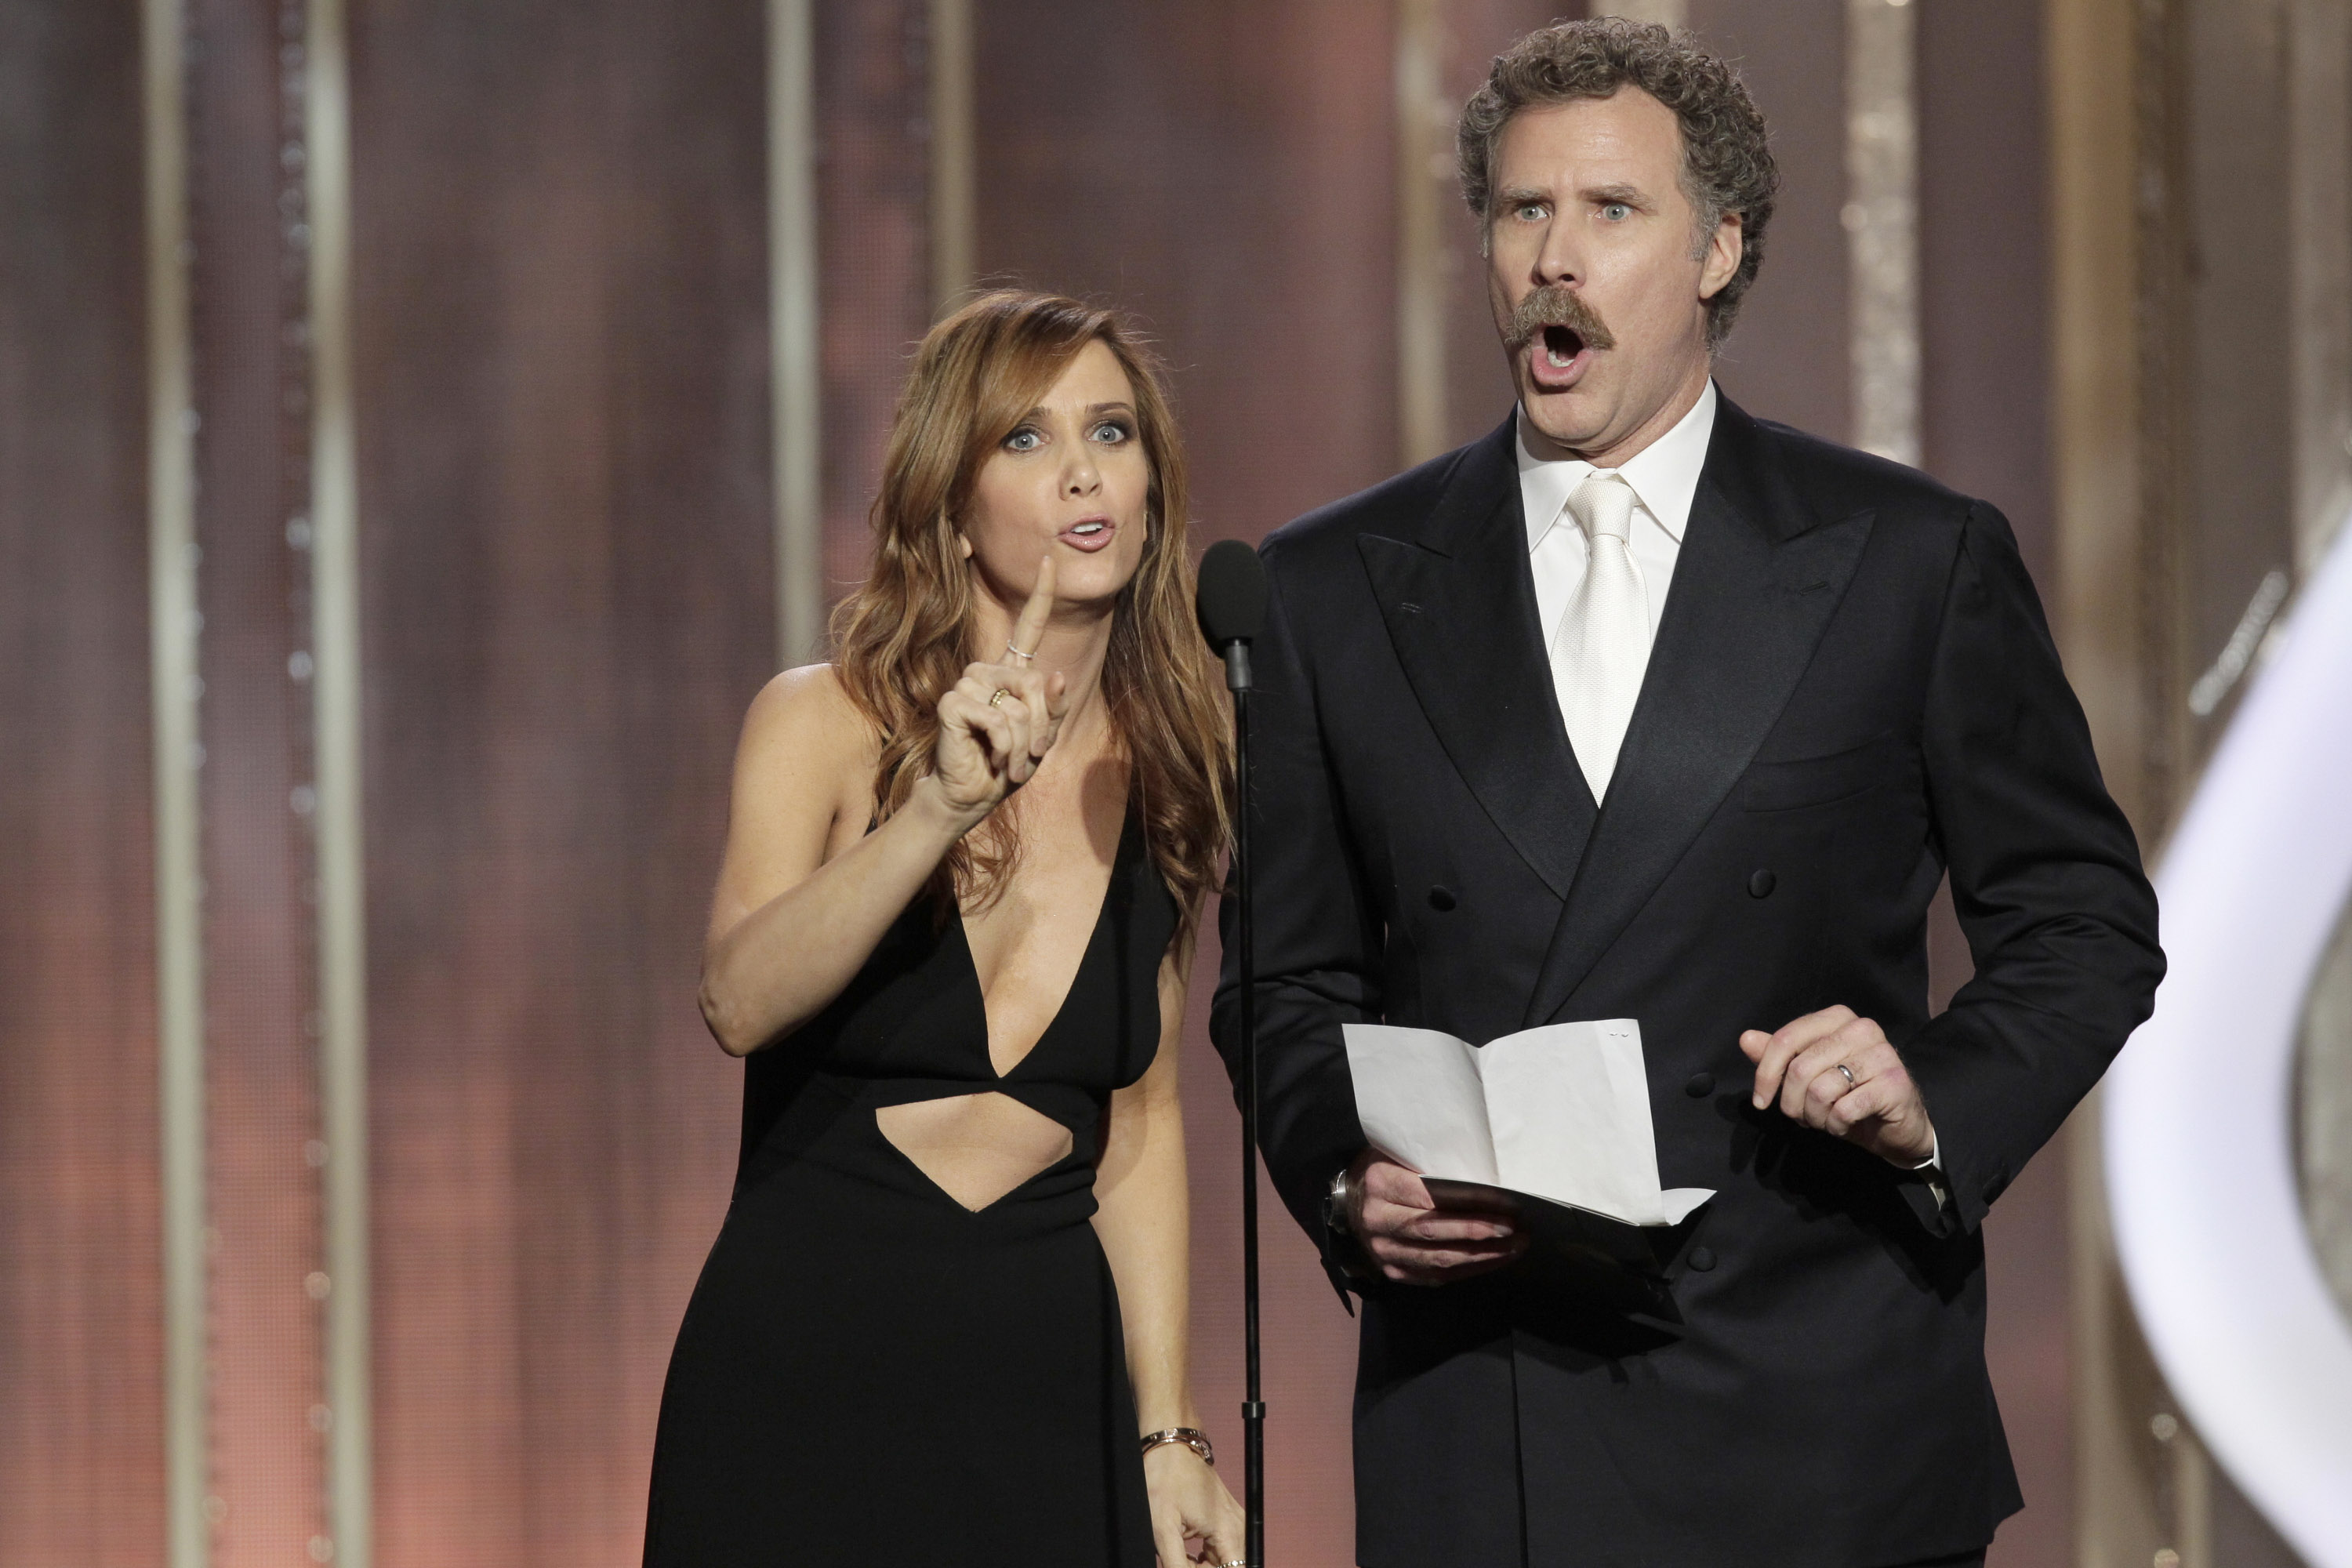 BEVERLY HILLS, CA - JANUARY 13: In this handout photo provided by NBCUniversal, Kristen Wiig and Will Ferrell on stage to present the Best Actress - Motion Picture, Comedy or Musical award during the 70th Annual Golden Globe Awards at the Beverly Hilton Hotel International Ballroom on January 13, 2013 in Beverly Hills, California. (Photo by Paul Drinkwater/NBCUniversal via Getty Images)